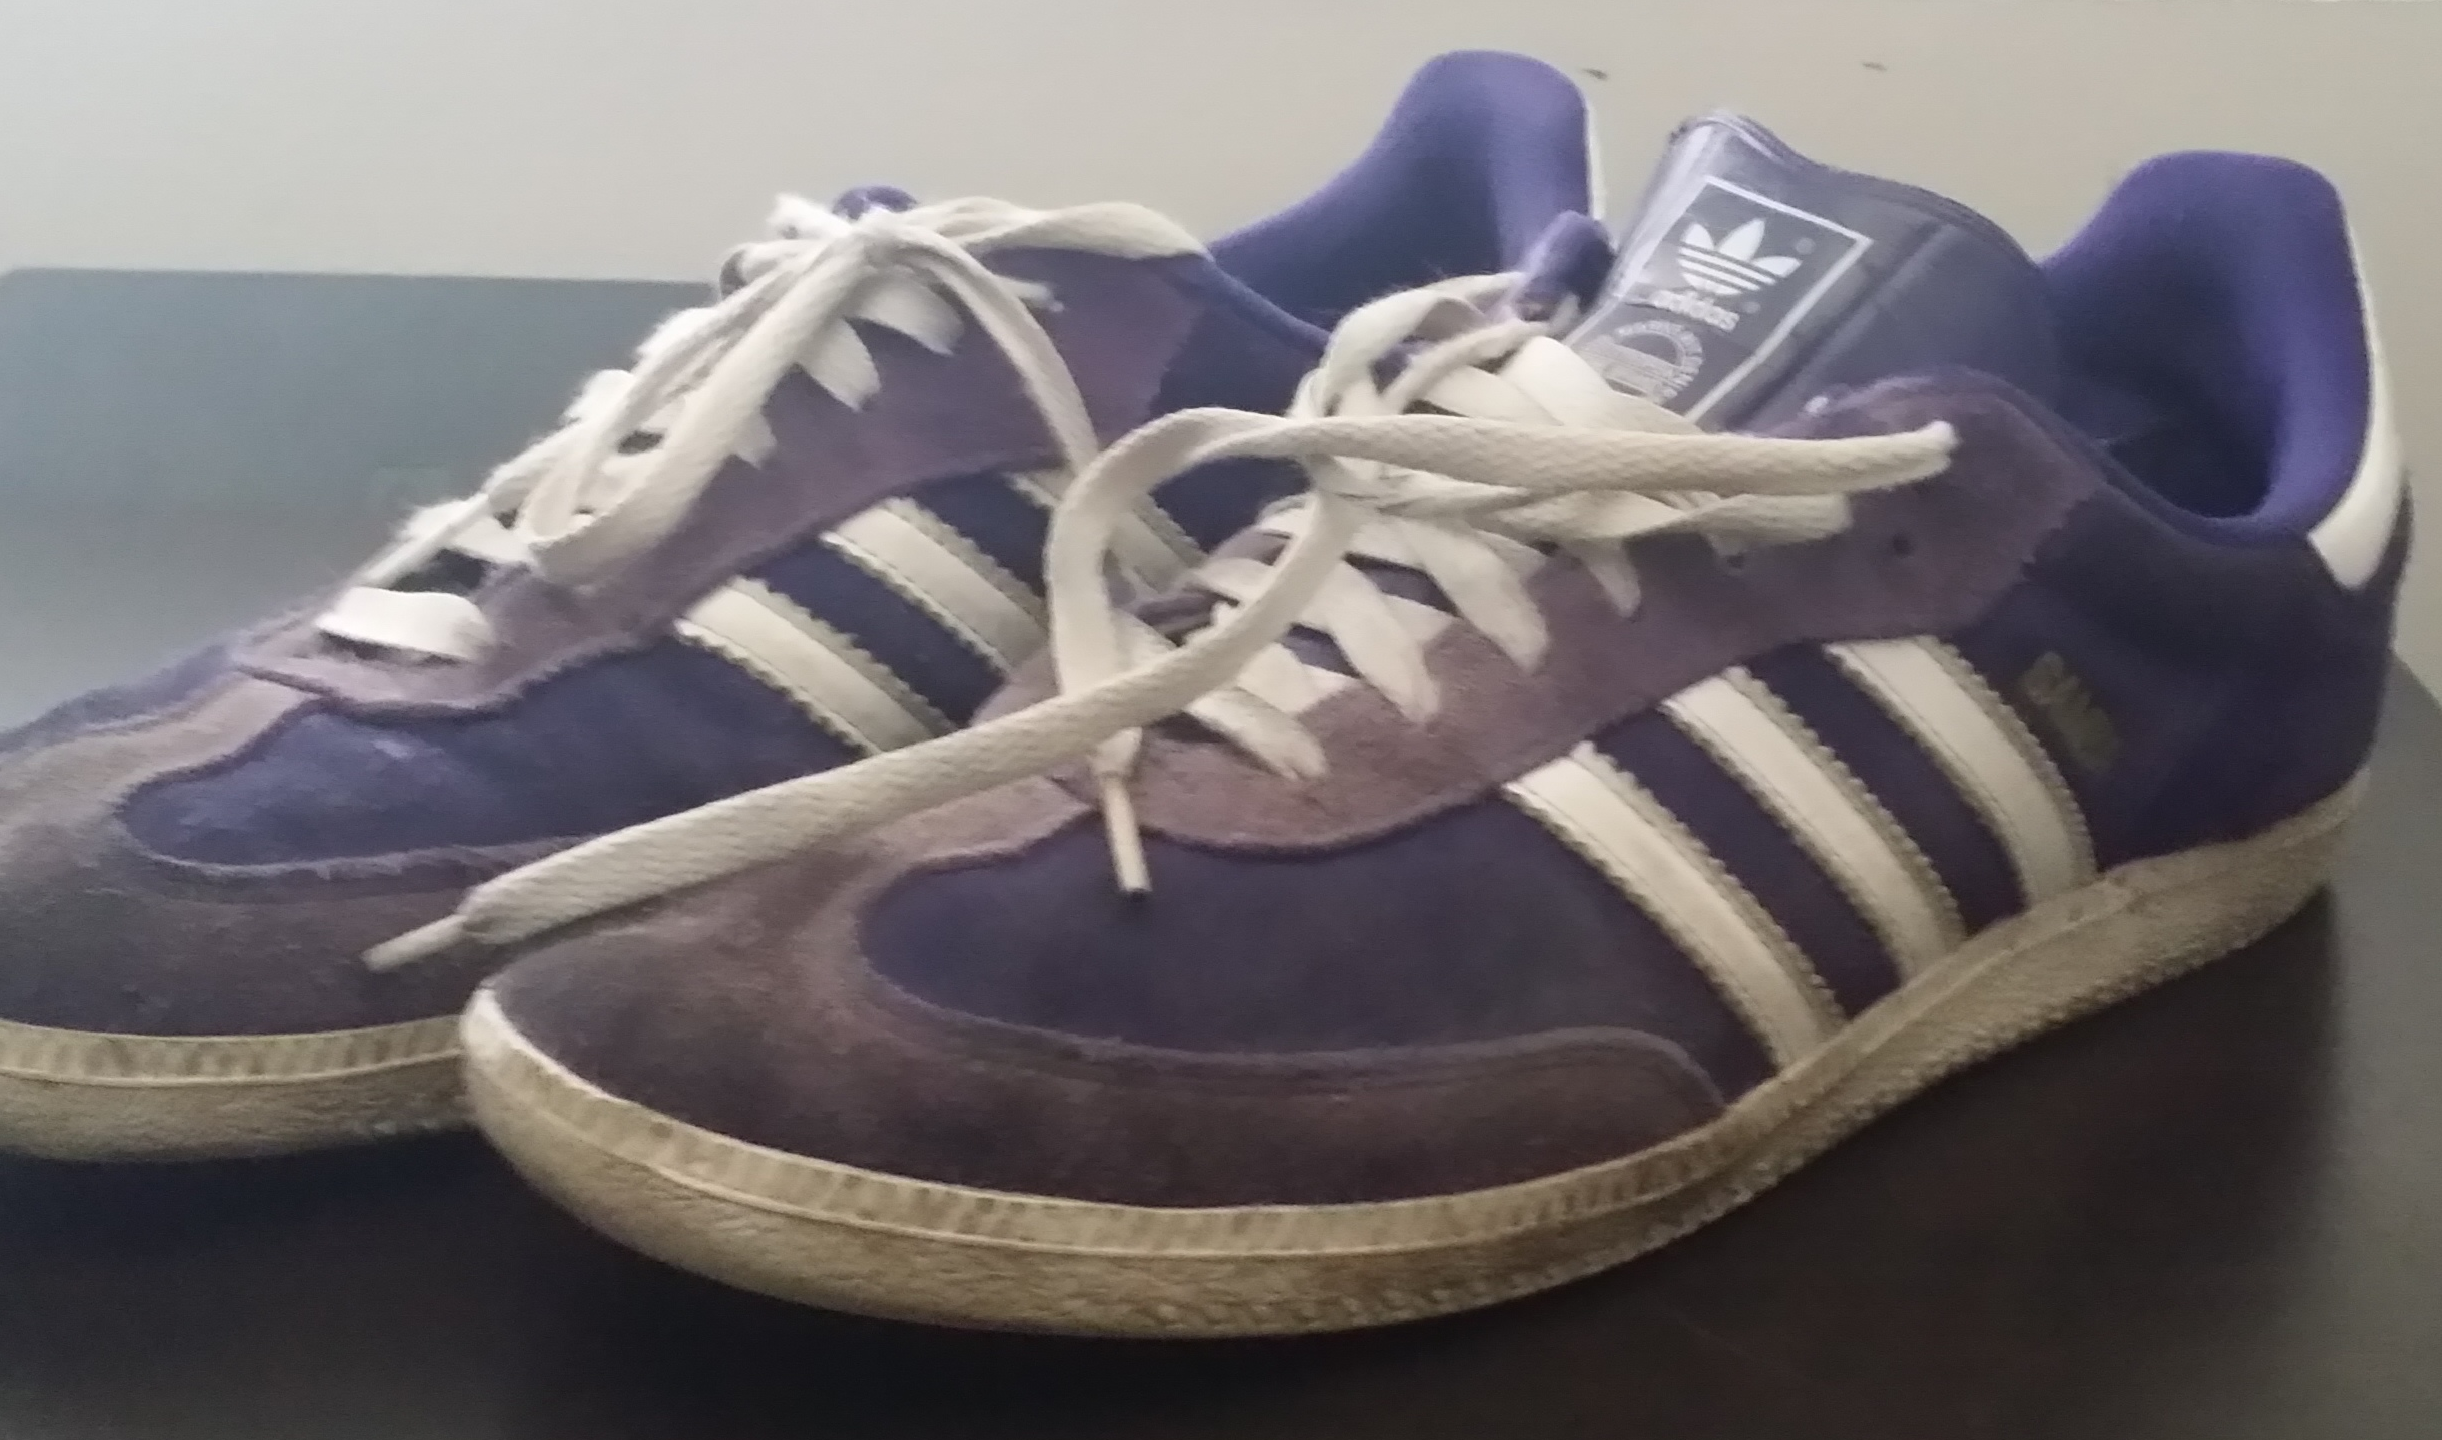 File:Adidas Samba shoes.png